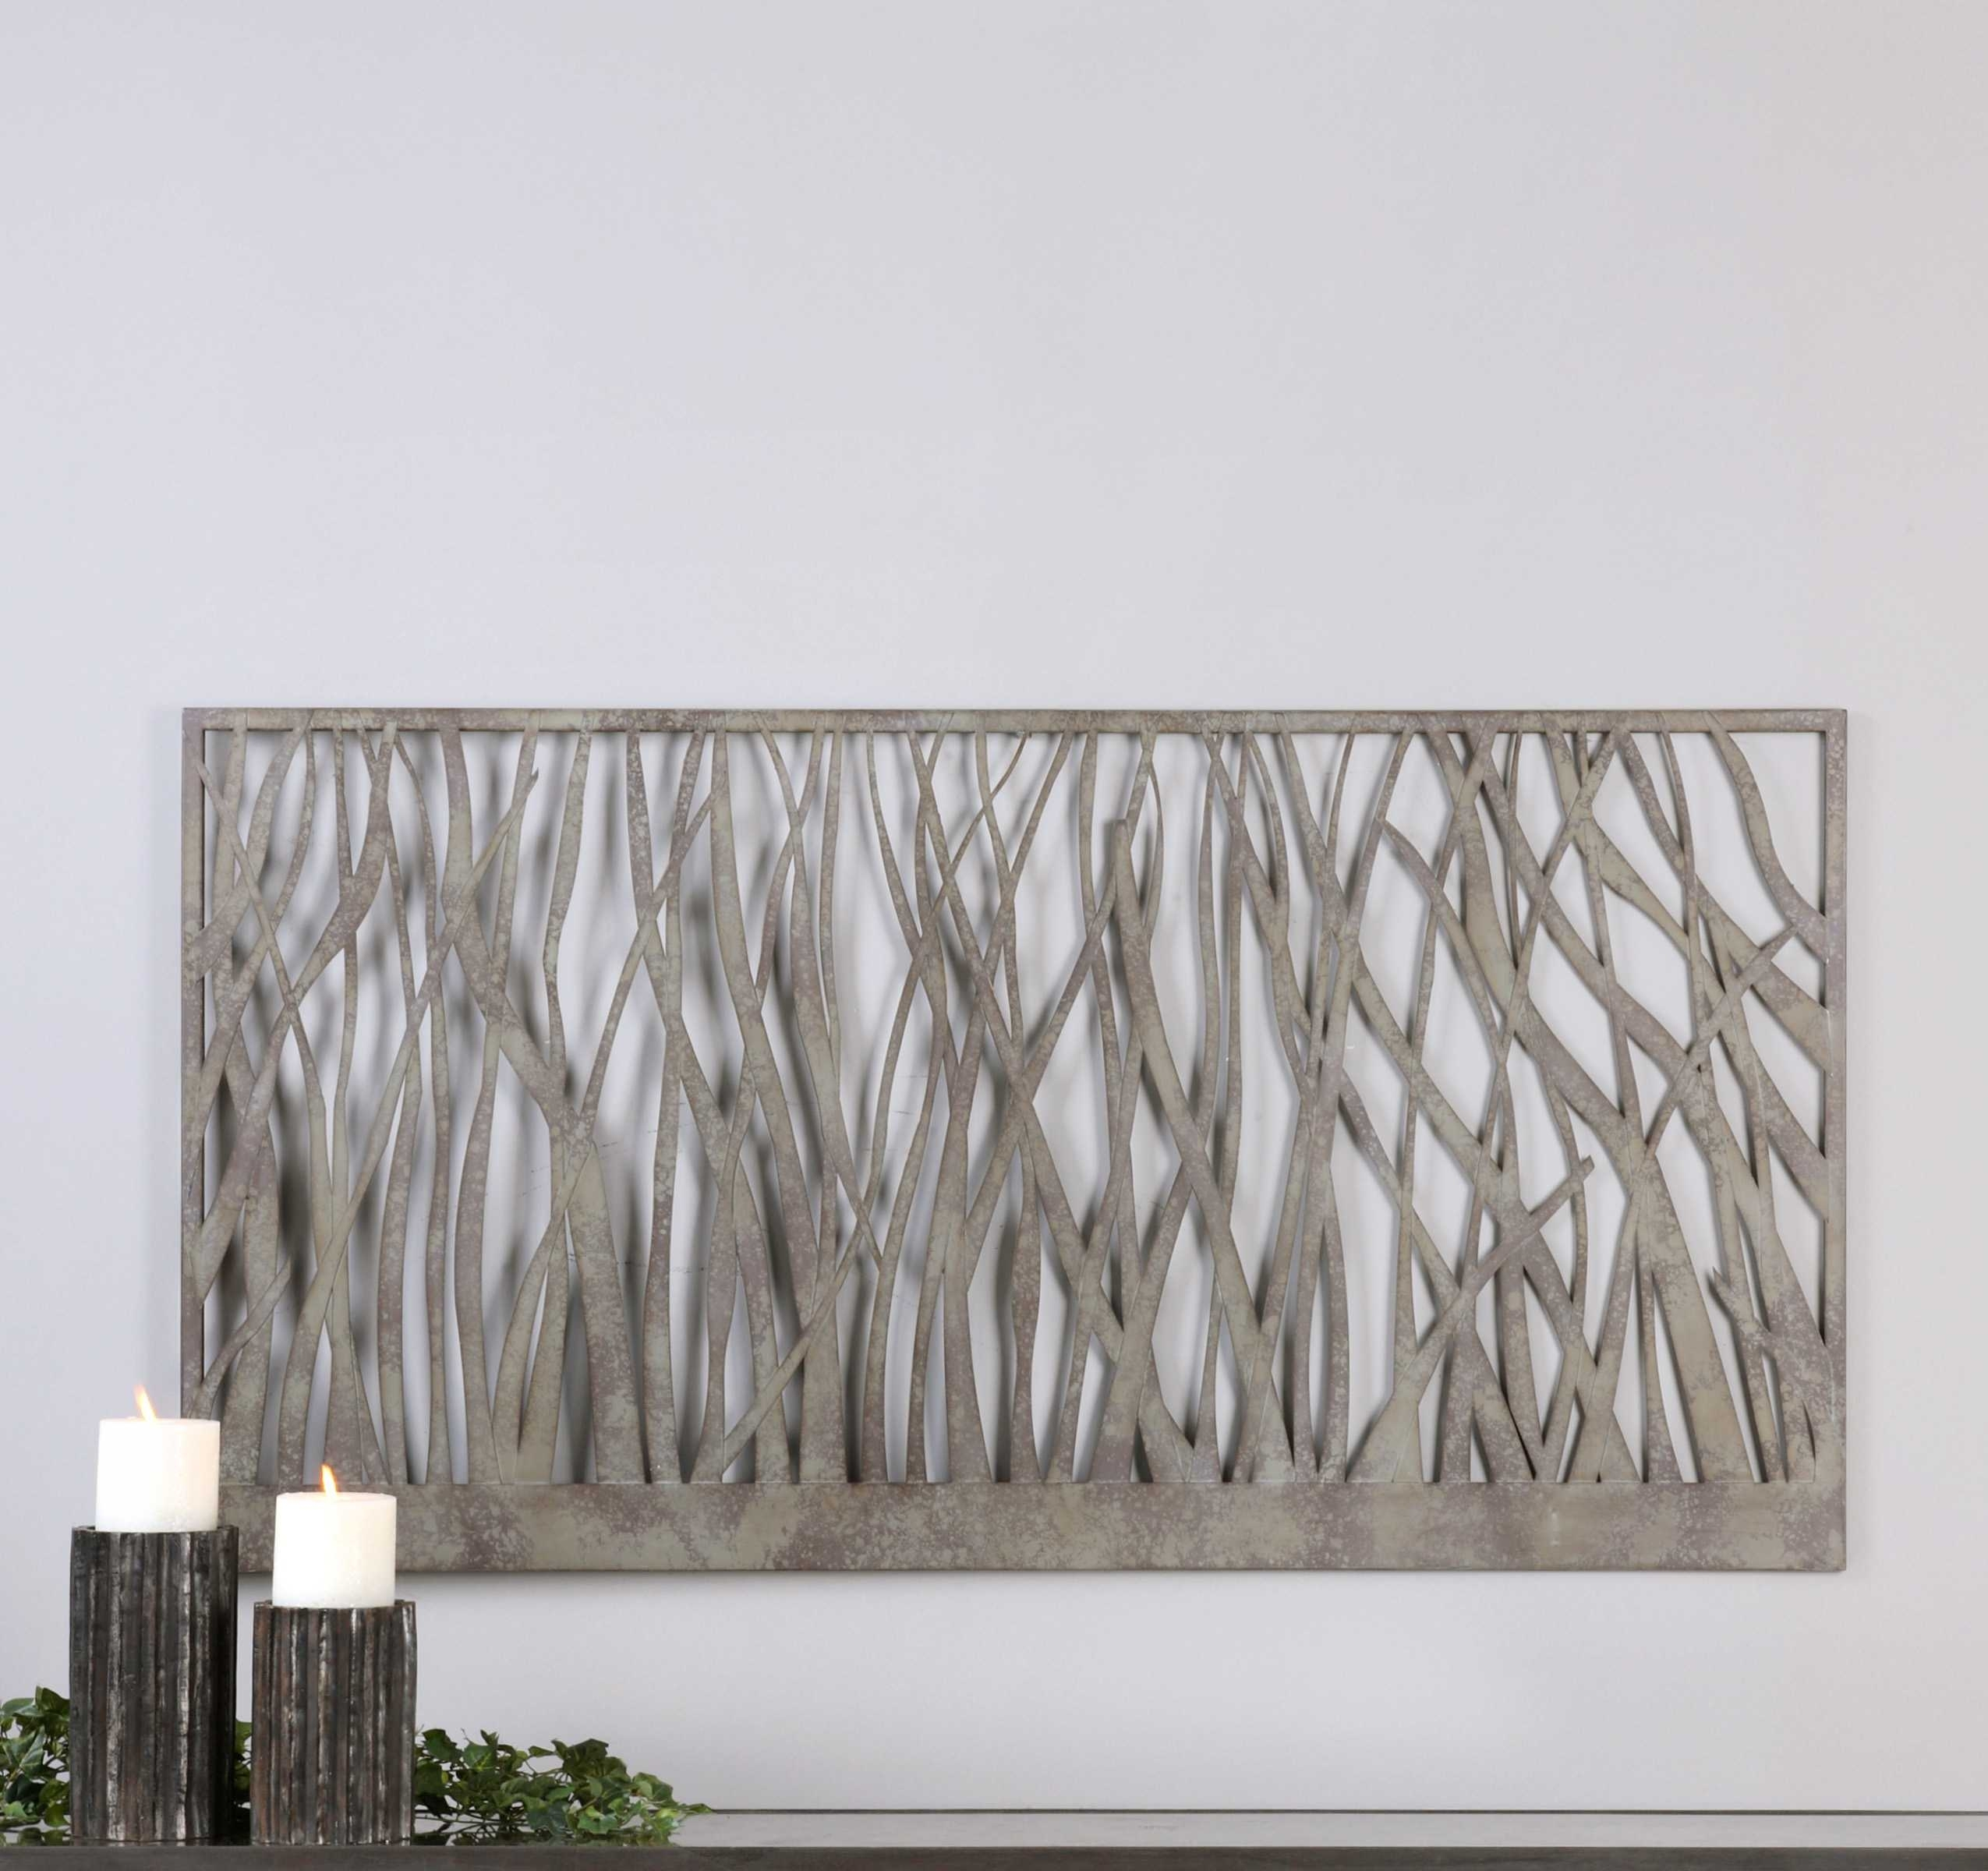 Uttermost Amadahy Metal Wall Art | Ut13931 Inside Latest Uttermost Wall Art (Gallery 8 of 20)